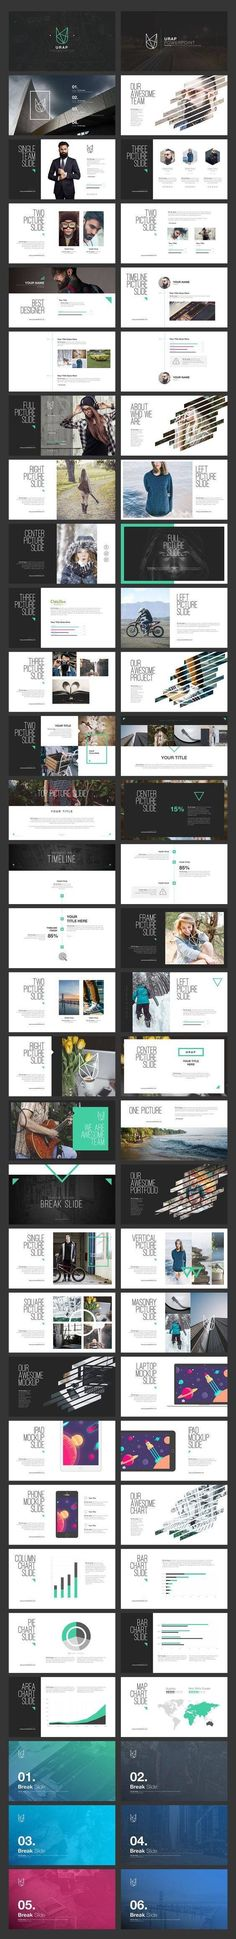 AERO Keynote Template by angkalimabelas AERO PowerPoint TemplateSpecification : 50 Slides Screen Ratio 19201080 Full HD Modern layouts based on master slide Includ Graphisches Design, Slide Design, Book Design, Layout Design, Print Layout, Webdesign Inspiration, Graphic Design Inspiration, Mise En Page Magazine, Design Presentation